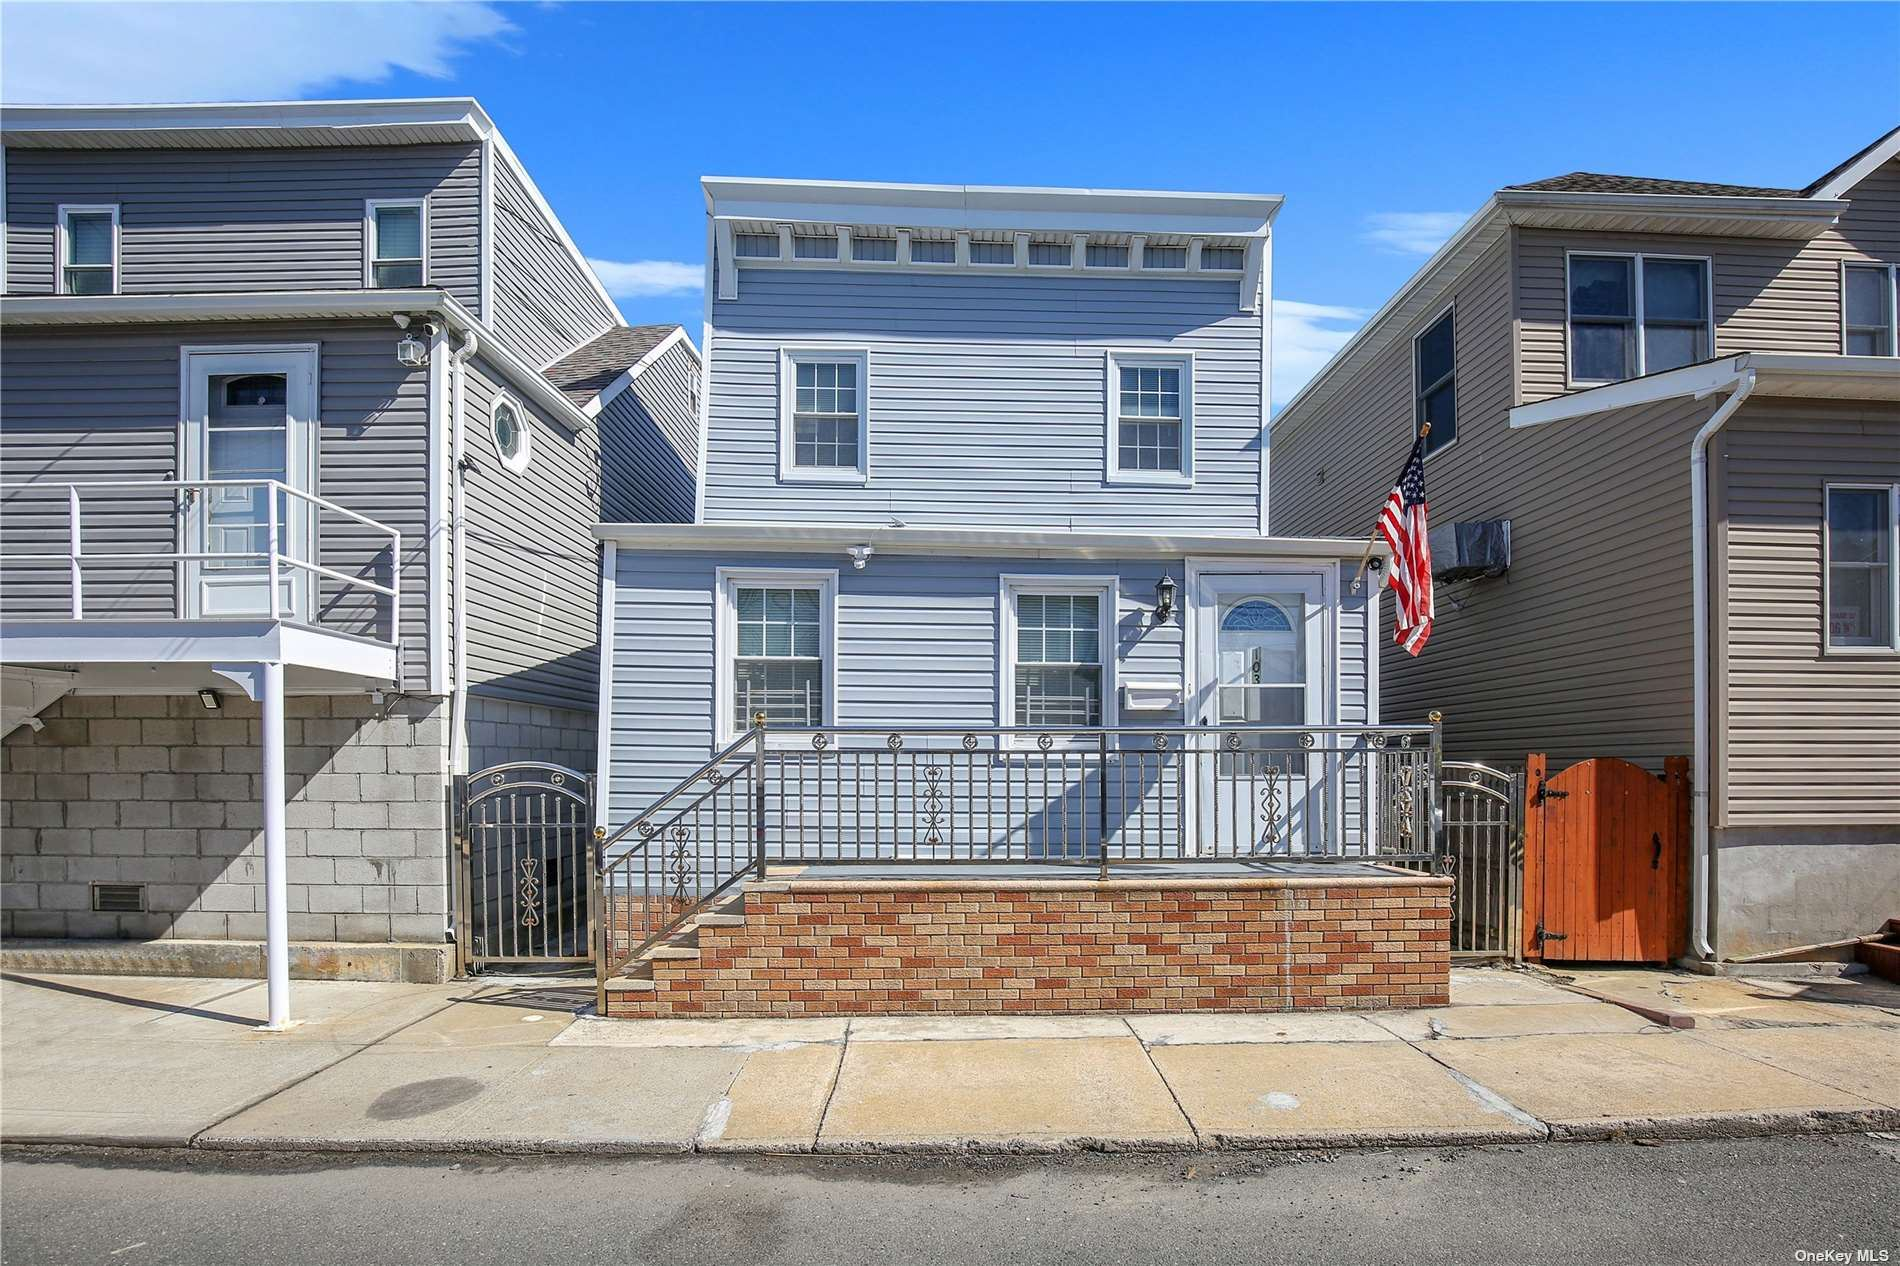 103-00 6th Road, Broad Channel, NY 11693 - MLS#: 3300947